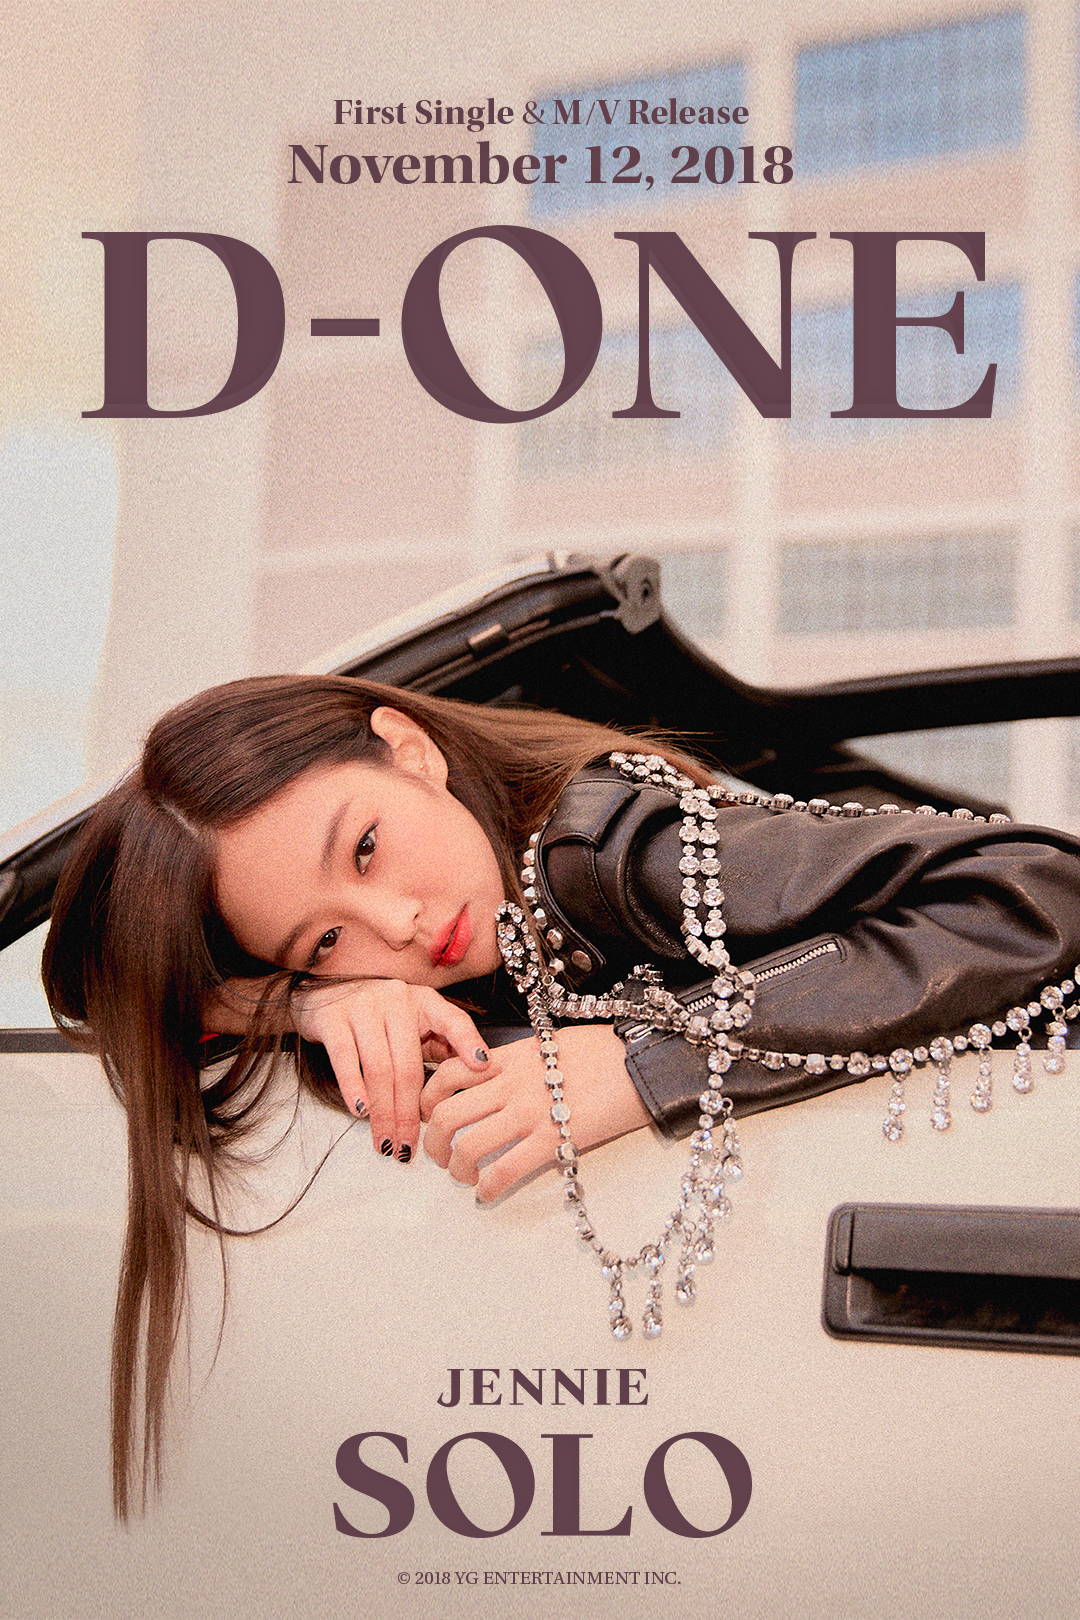 [JENNIE]DONE_F